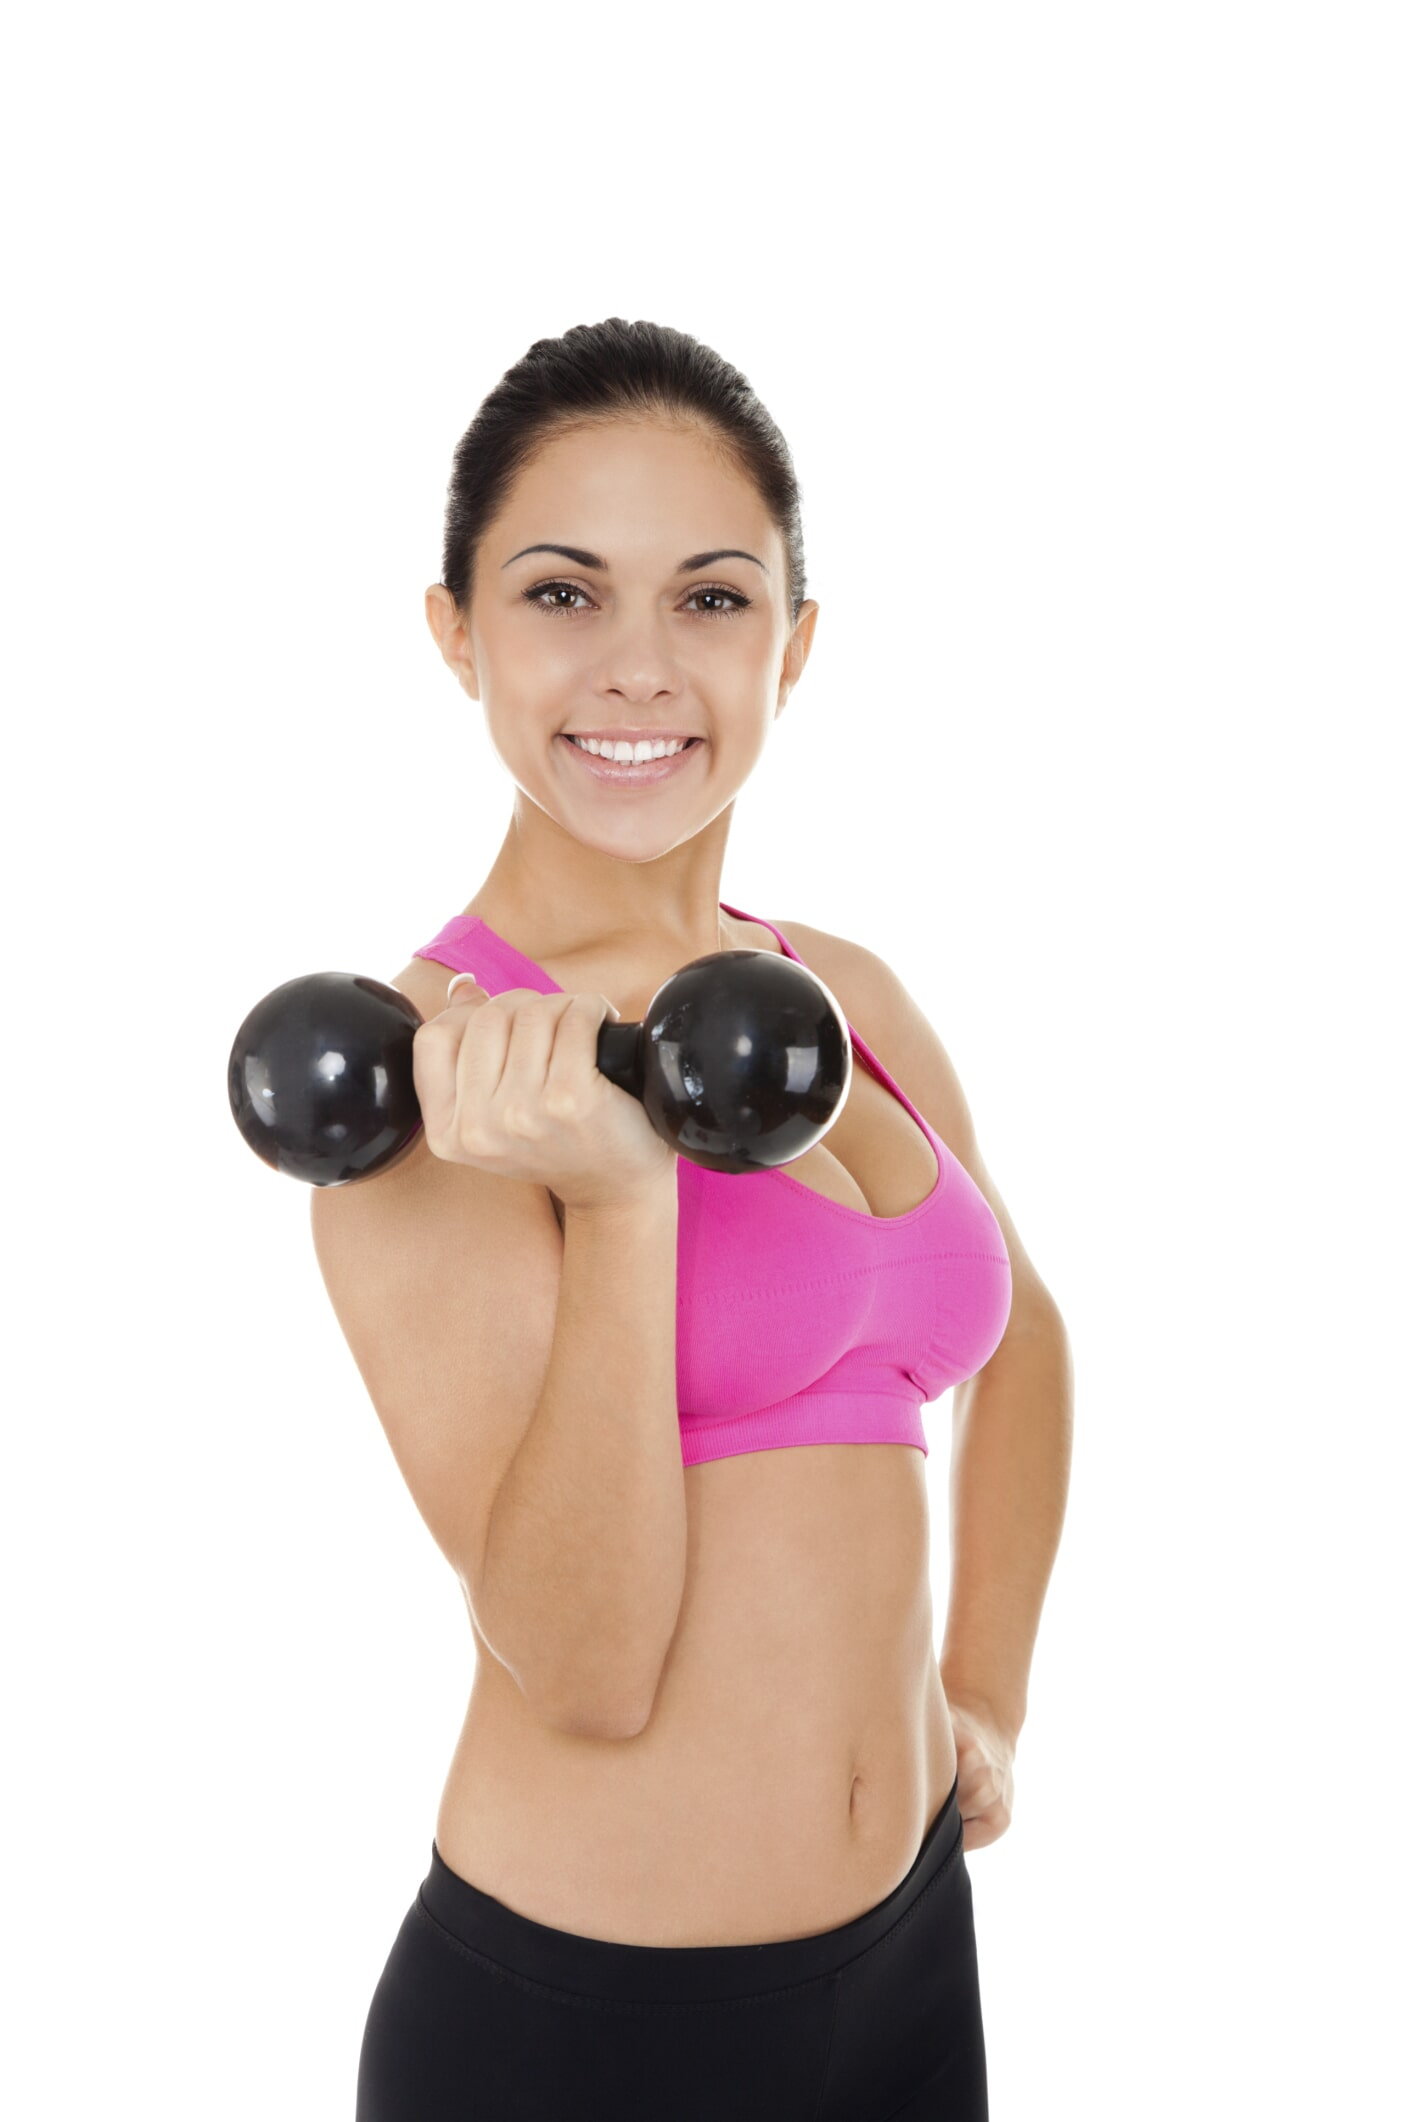 New injectable weight loss medication